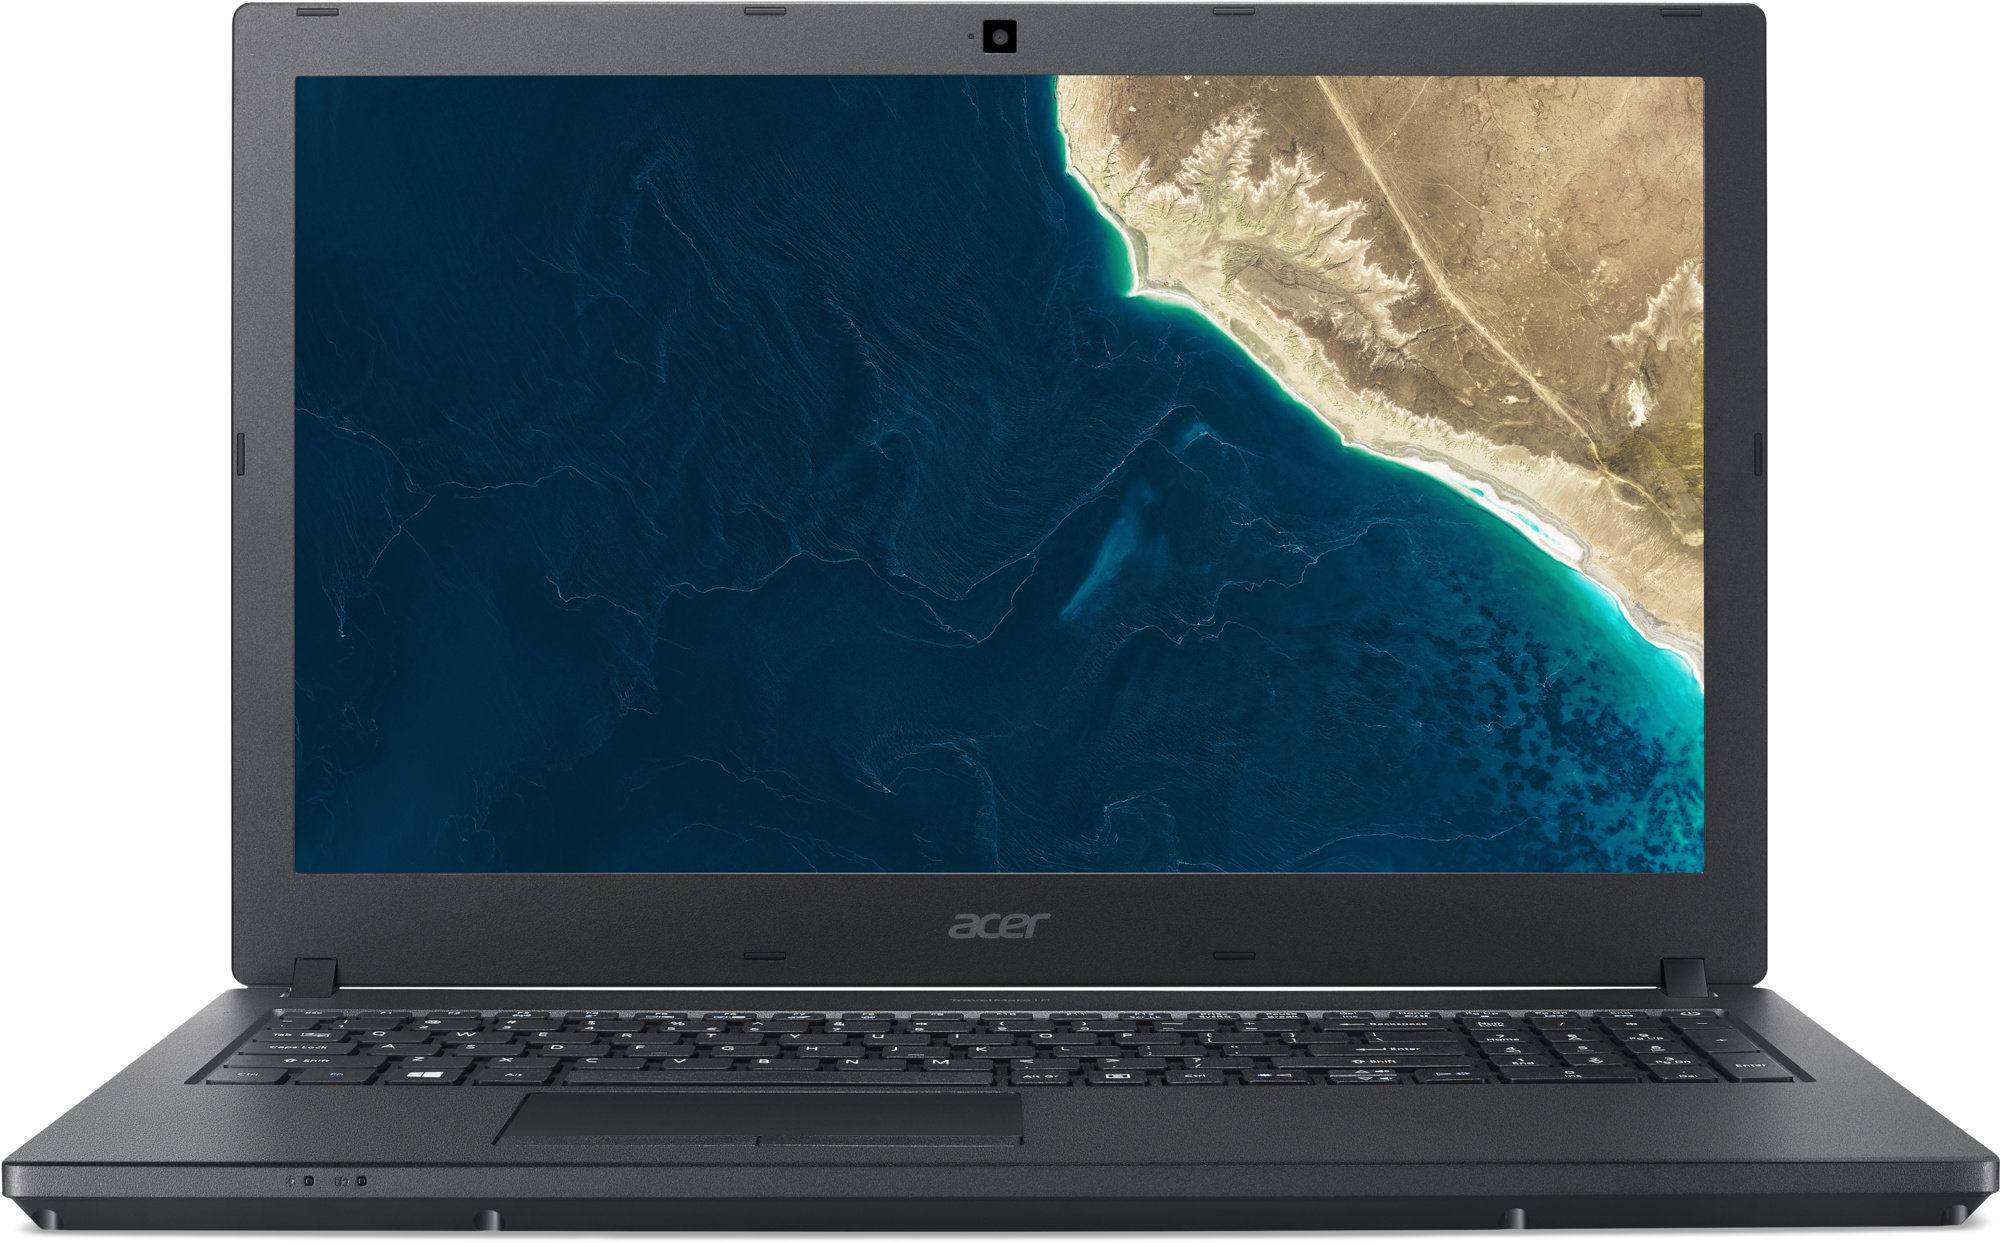 "AcerTravelMate P2510-M-524Q i5-7200U/4GB+N/256GB SSD+N/HD Graphics/15.6"" FHD IPS LED/BT/W10 Pro/Black"